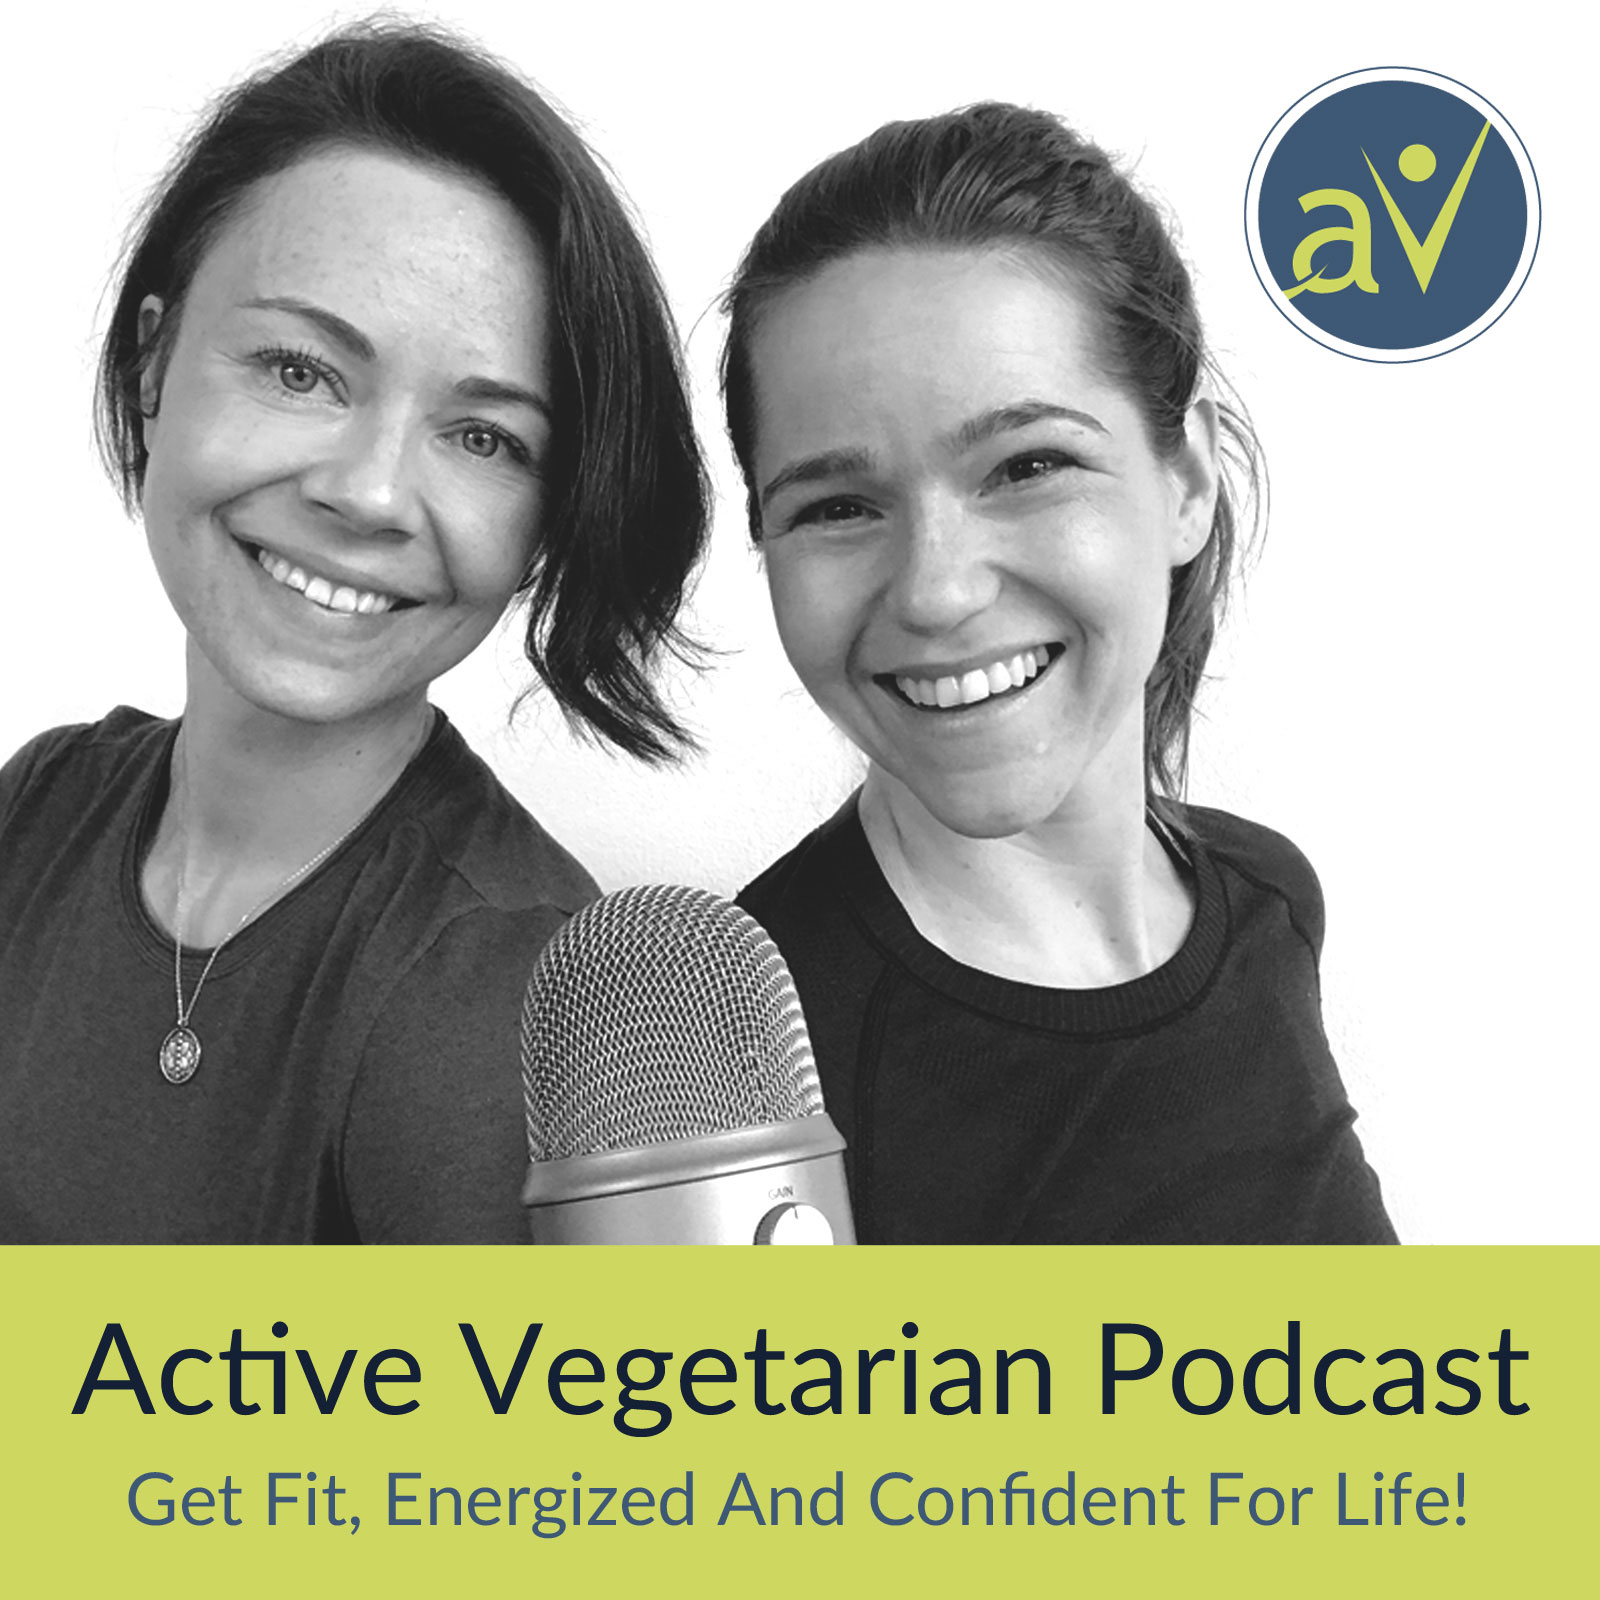 Active Vegetarian, Nutrition, Fitness & Lifestyle Tips To Help Make Plant-Based Living Simple show art